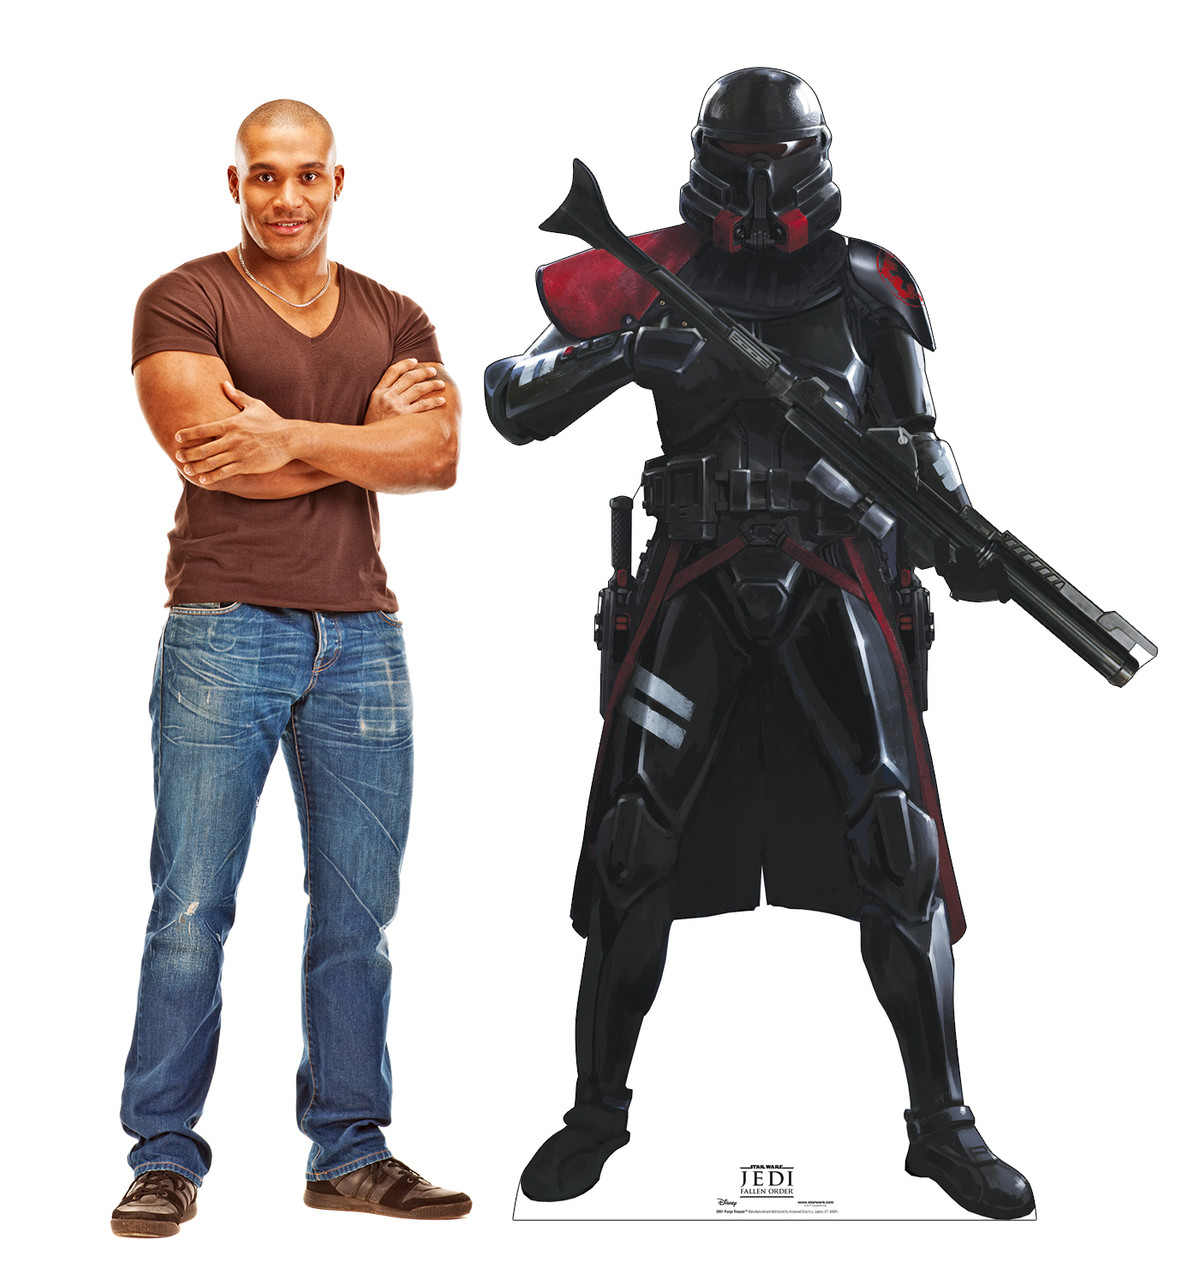 Life-size cardboard standee of Purge Trooper from Jedi Fallen Order with model.